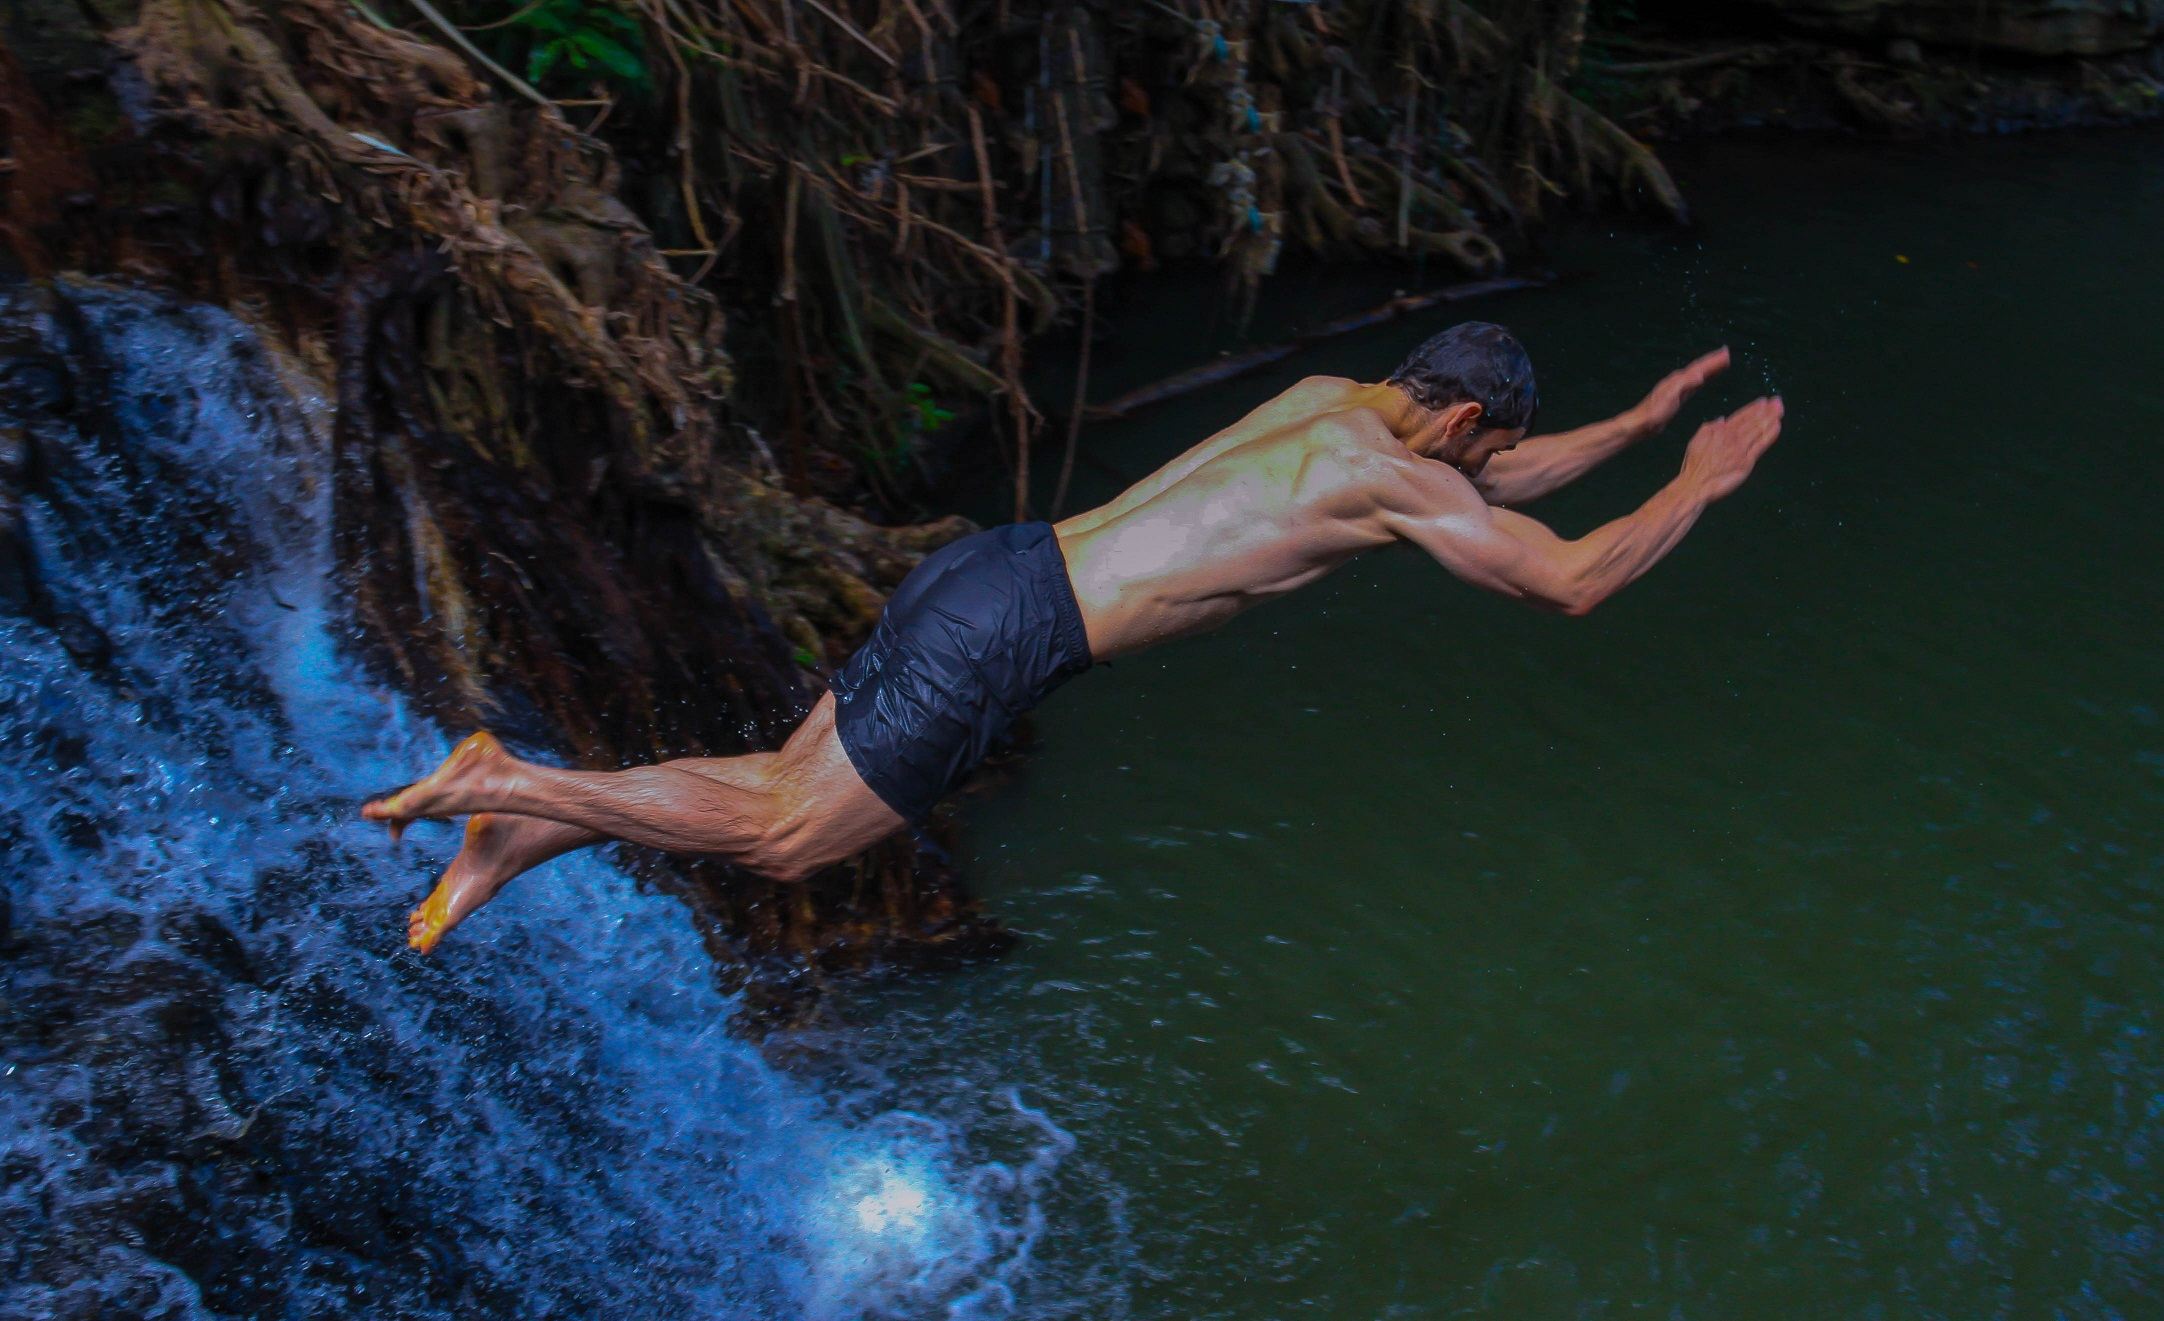 St. Lucia Tours - Waterfall Cliff jumping